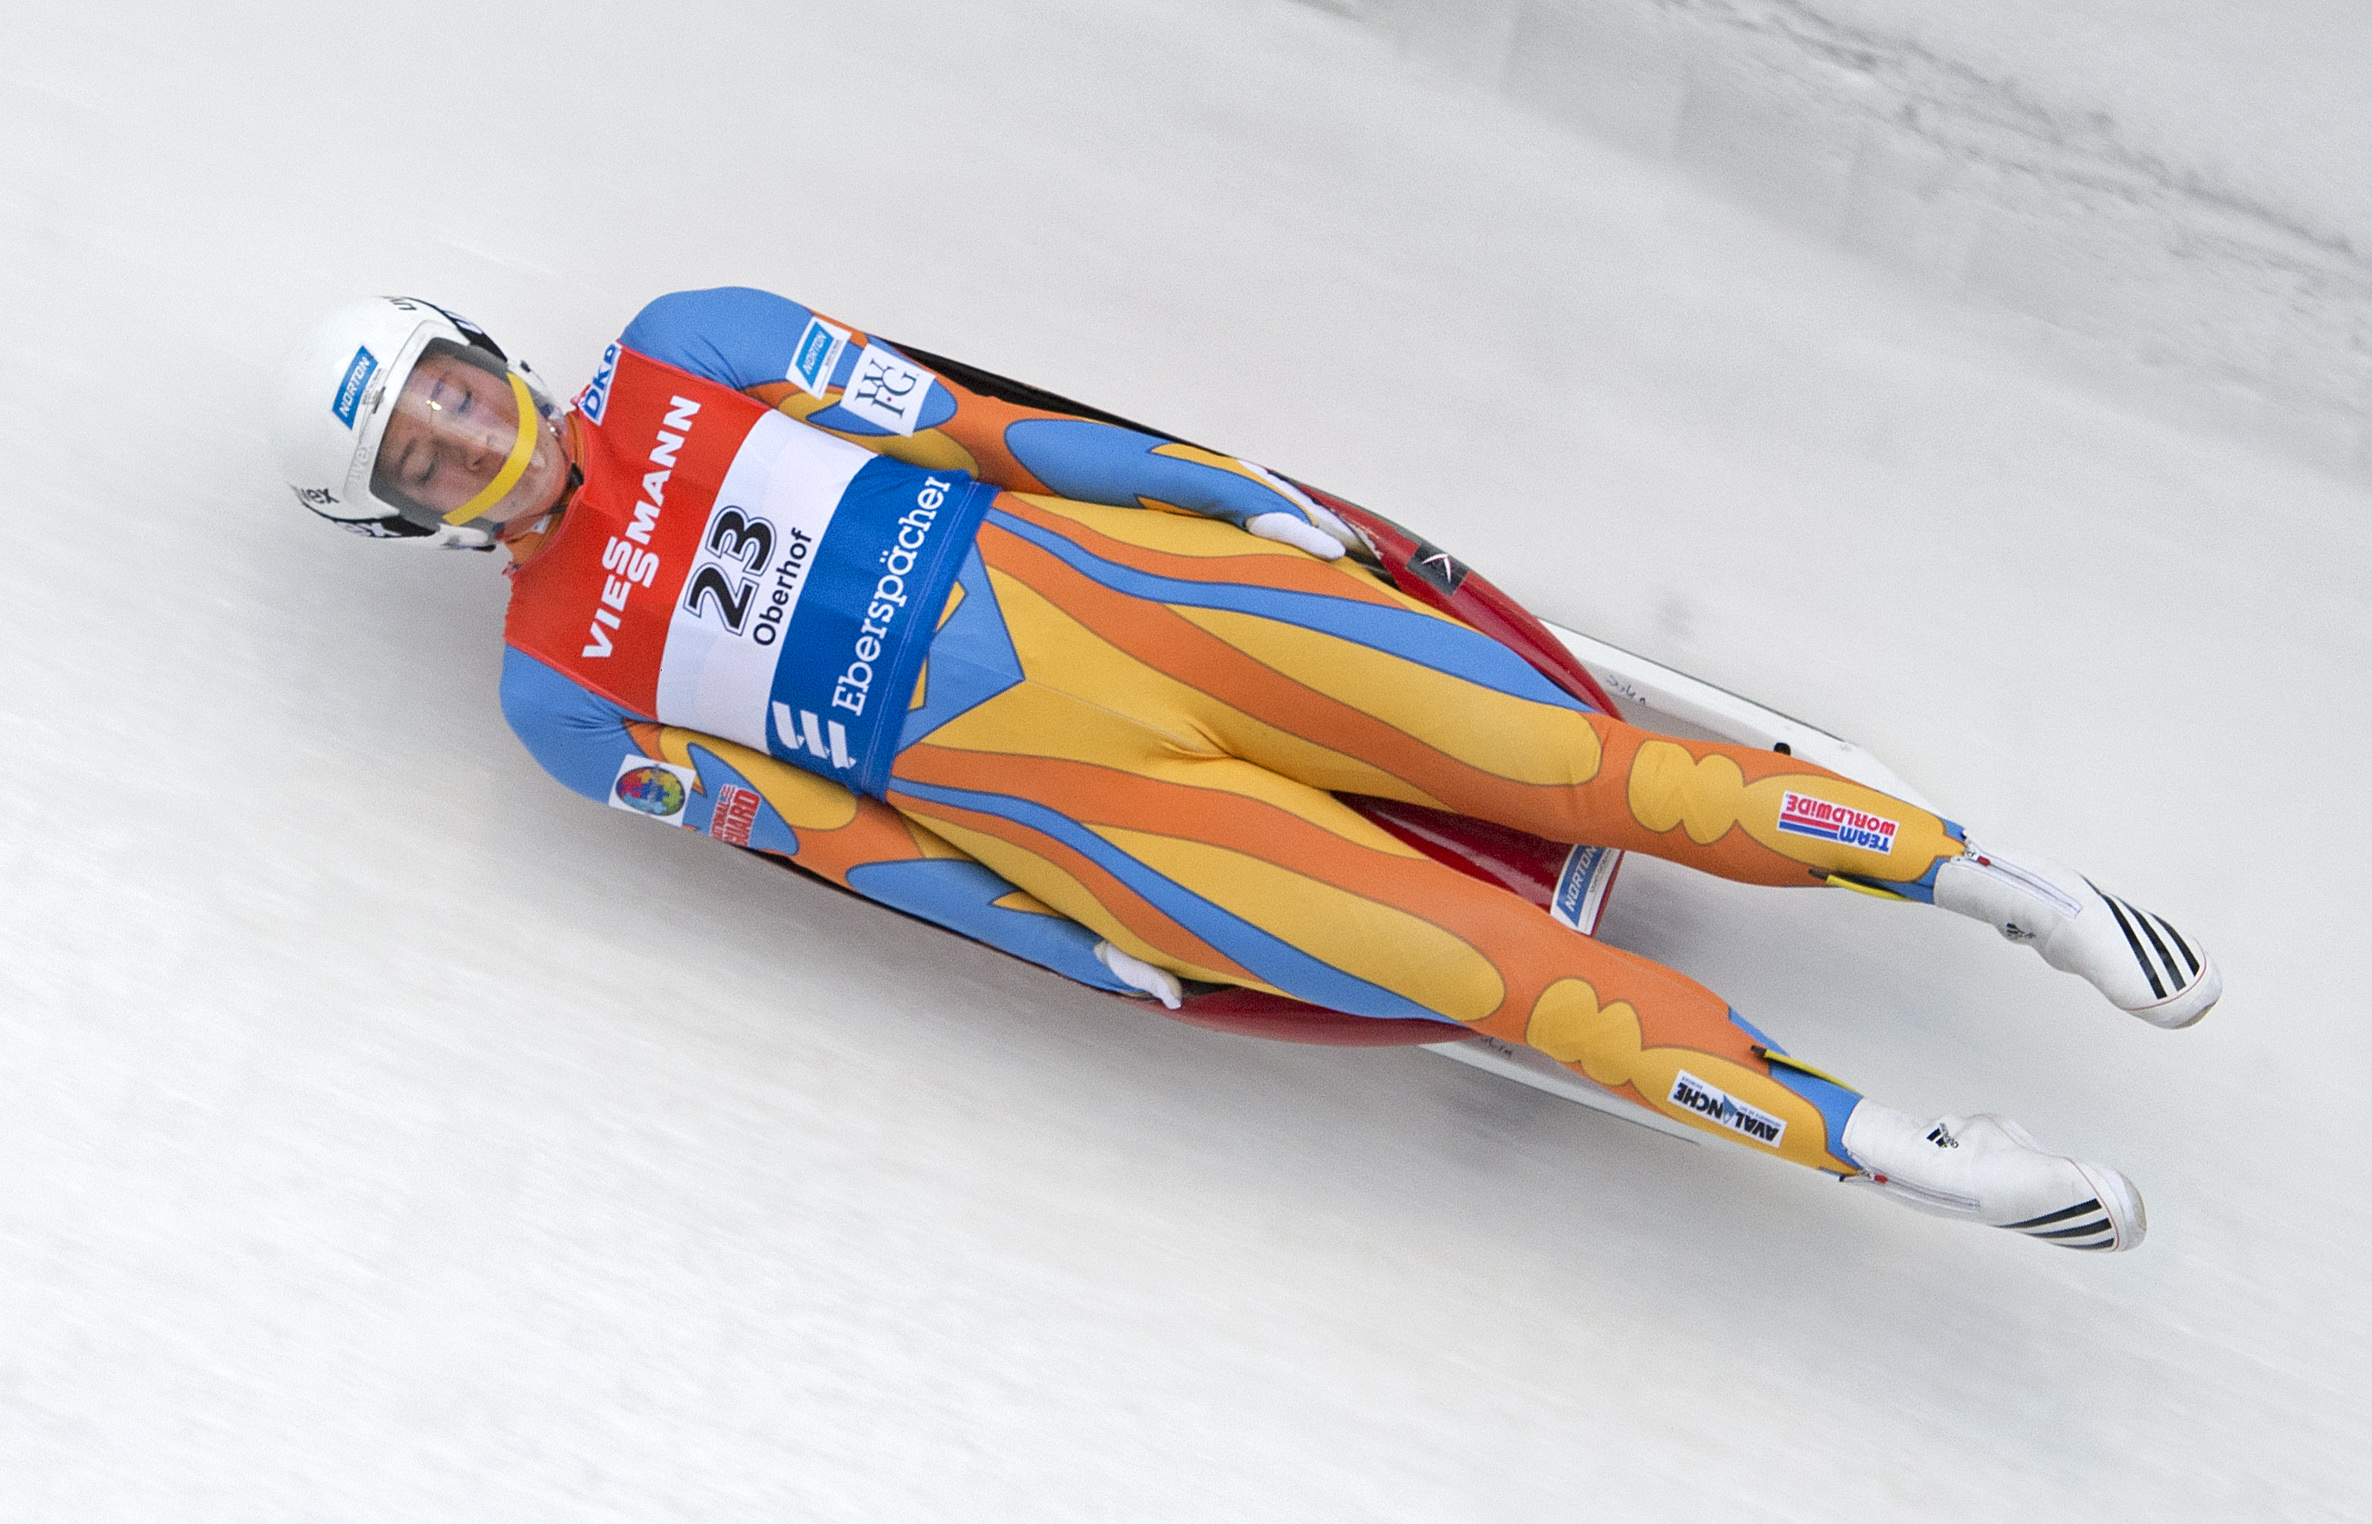 Kate Hansen of the U.S. speeds  during the first run of the women's luge World Cup race in Oberhof, Germany, Saturday, Jan. 11, 2014. Courtesy AP Photo/Jens Meyer.